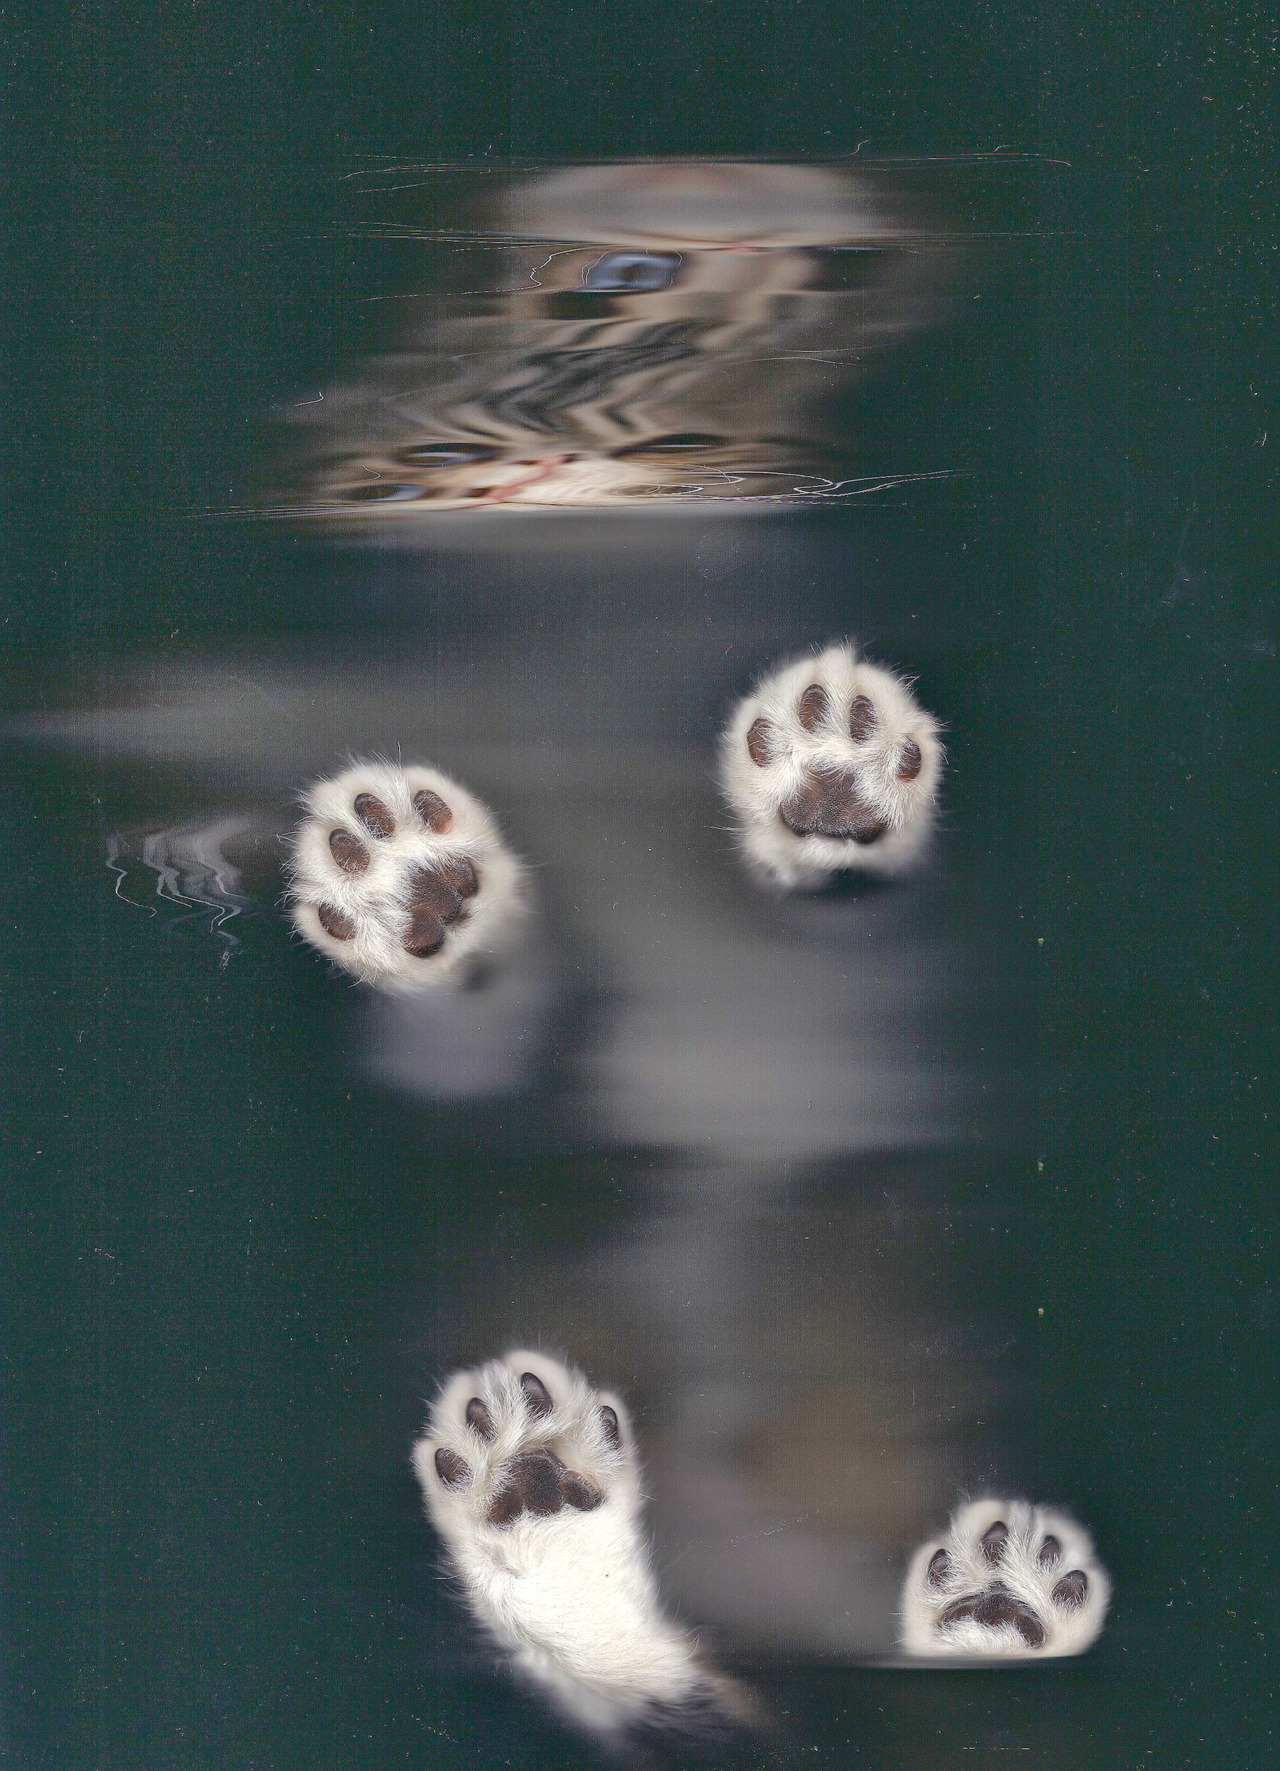 Made a Cat Scan of my new Kitten Michael Dinner